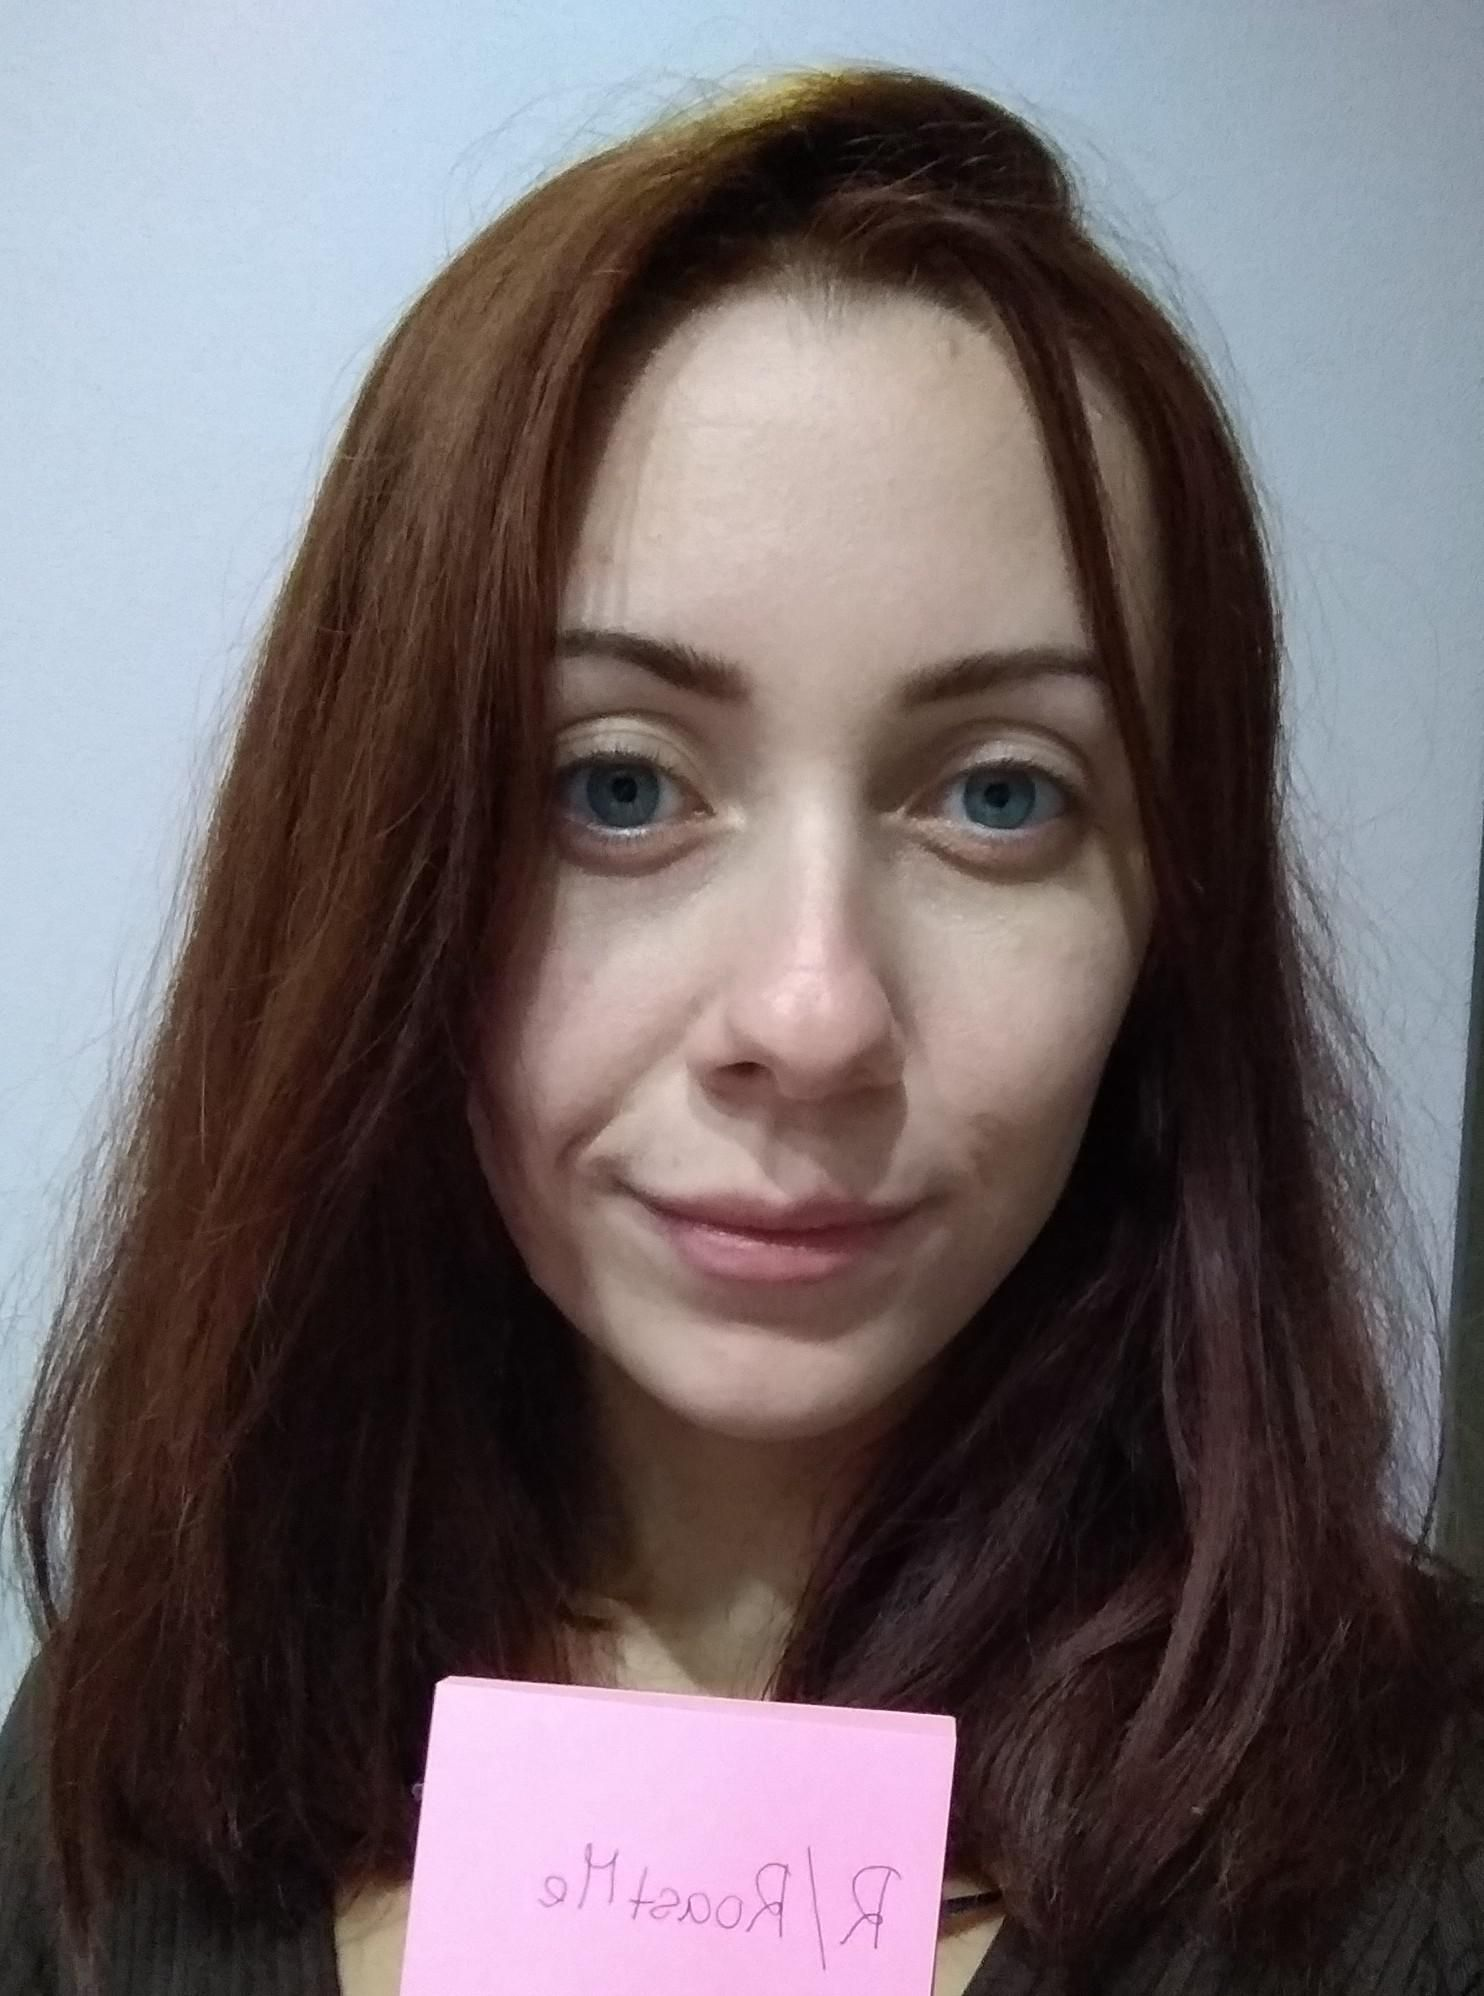 Hairdressers Of Reddit Do You Think I Could Pull Off A Fringe I M Looking For A Change But Afraid Of Big Changes Like Dyeing My Ha Hair Again Dye My Hair